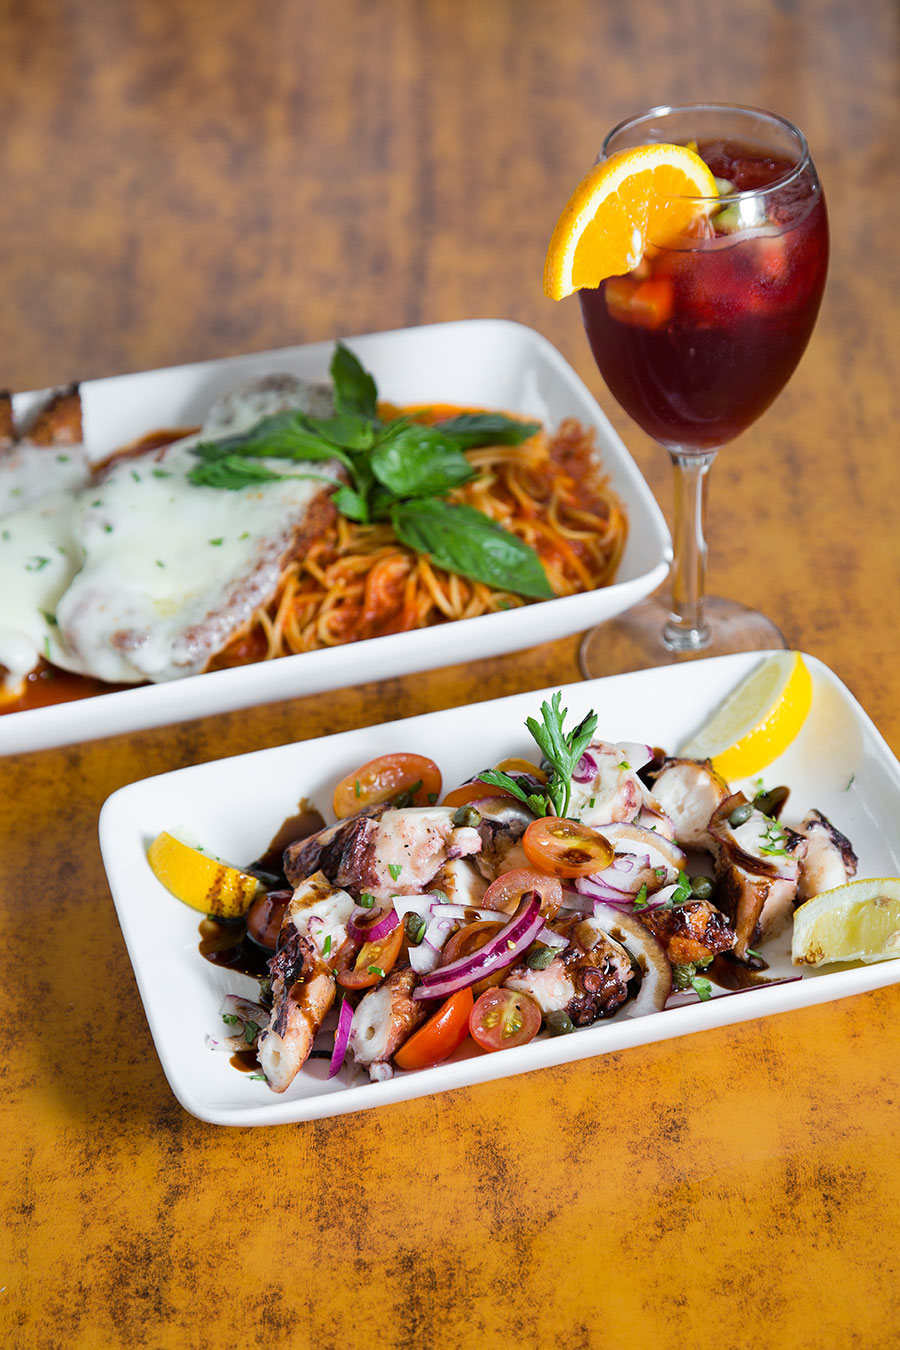 Chicken Parmigiano (top) and Octopus Cocktail (bottom). (Samira Bouaou/Epoch Times)